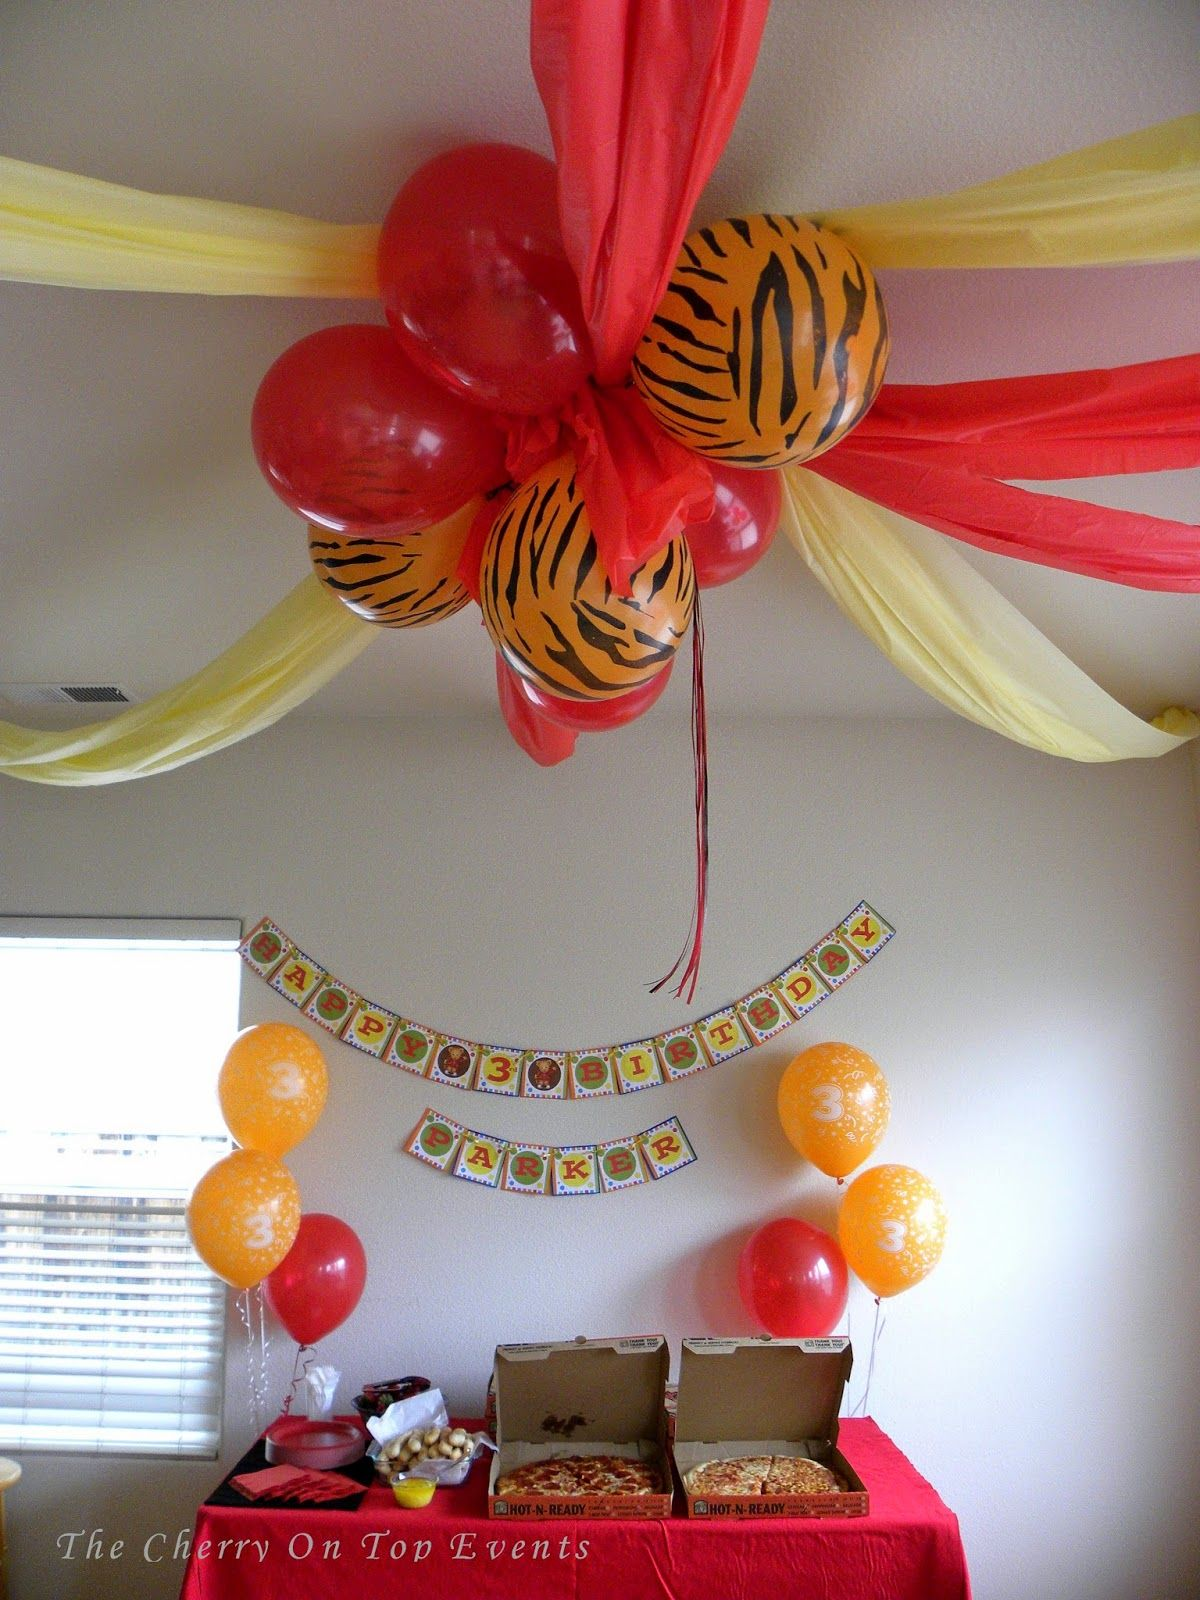 The Cherry On Top Events Party Blog: A Daniel Tiger's 3rd Birthday Party! #safaribirthdayparty